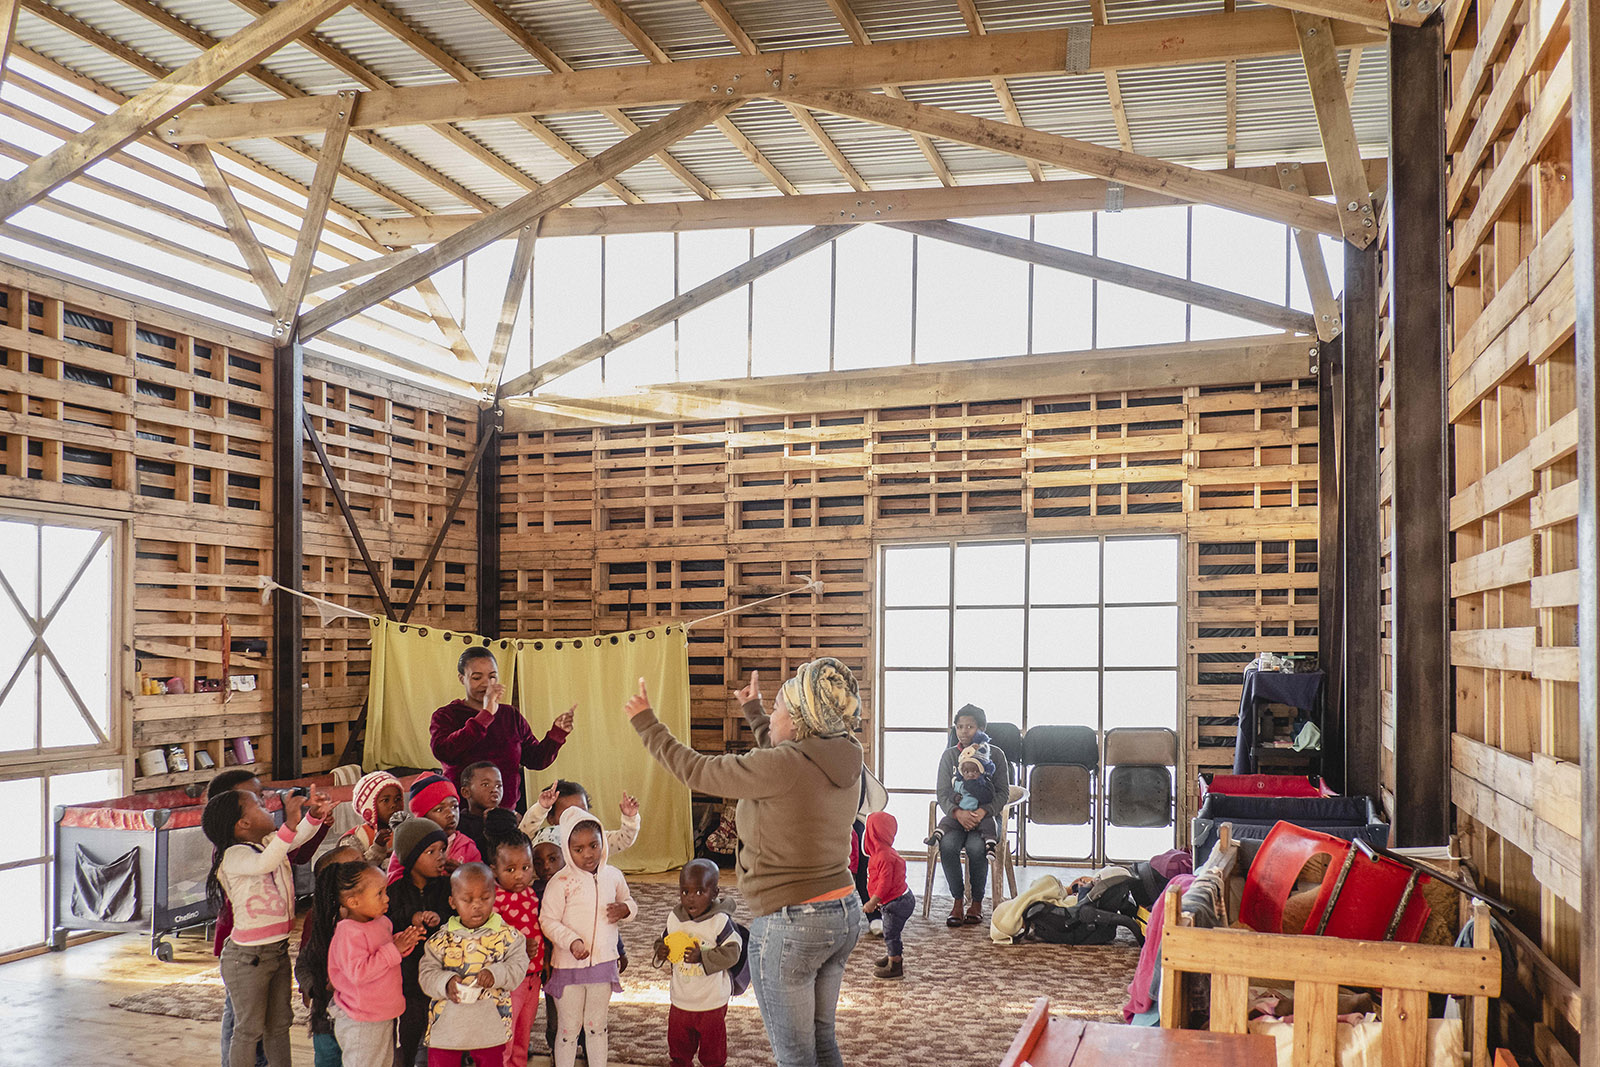 The crèche seen from the inside shows that timber pallets have been used to make the walls, with a corrugated plastic strip below the roof to introduce daylight